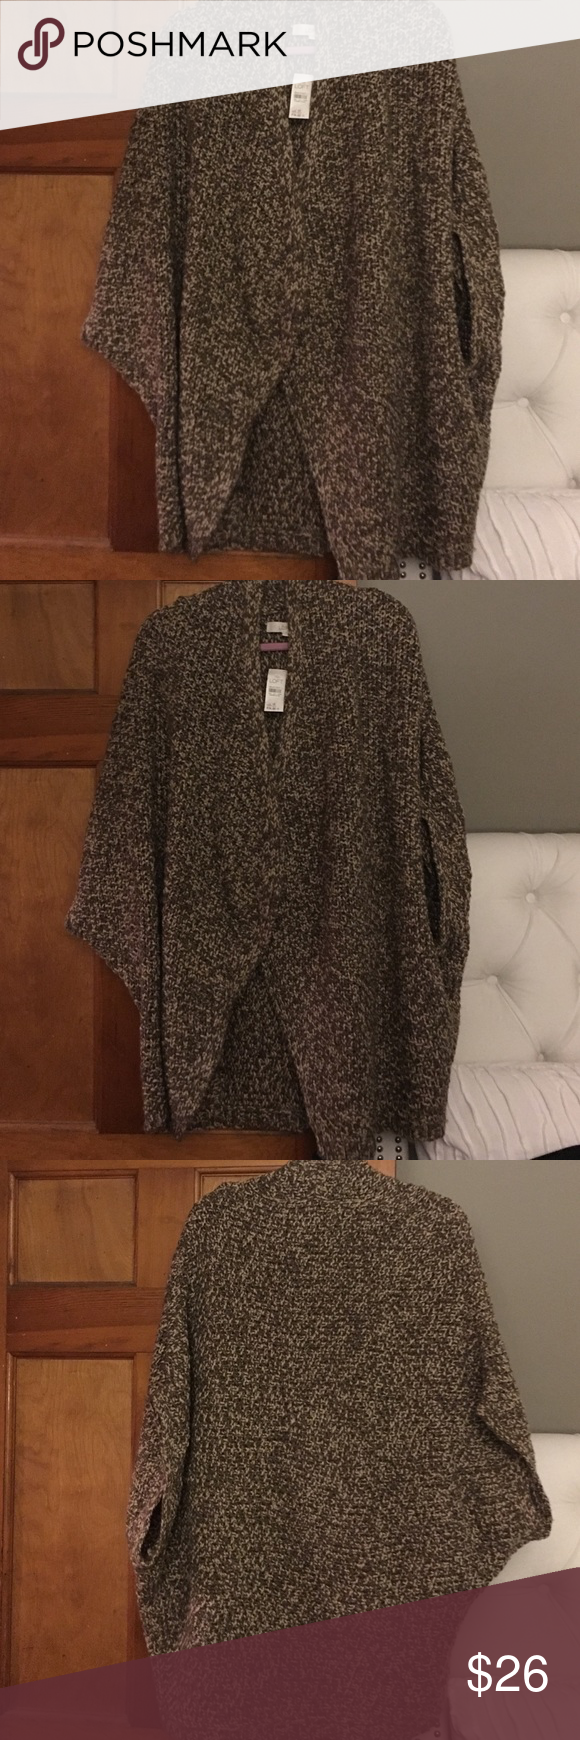 NWT Loft over sized shirt sleeve cocoon sweater NWT Loft oversized Cocoon sweater size L/XL so Cute and comfy LOFT Sweaters